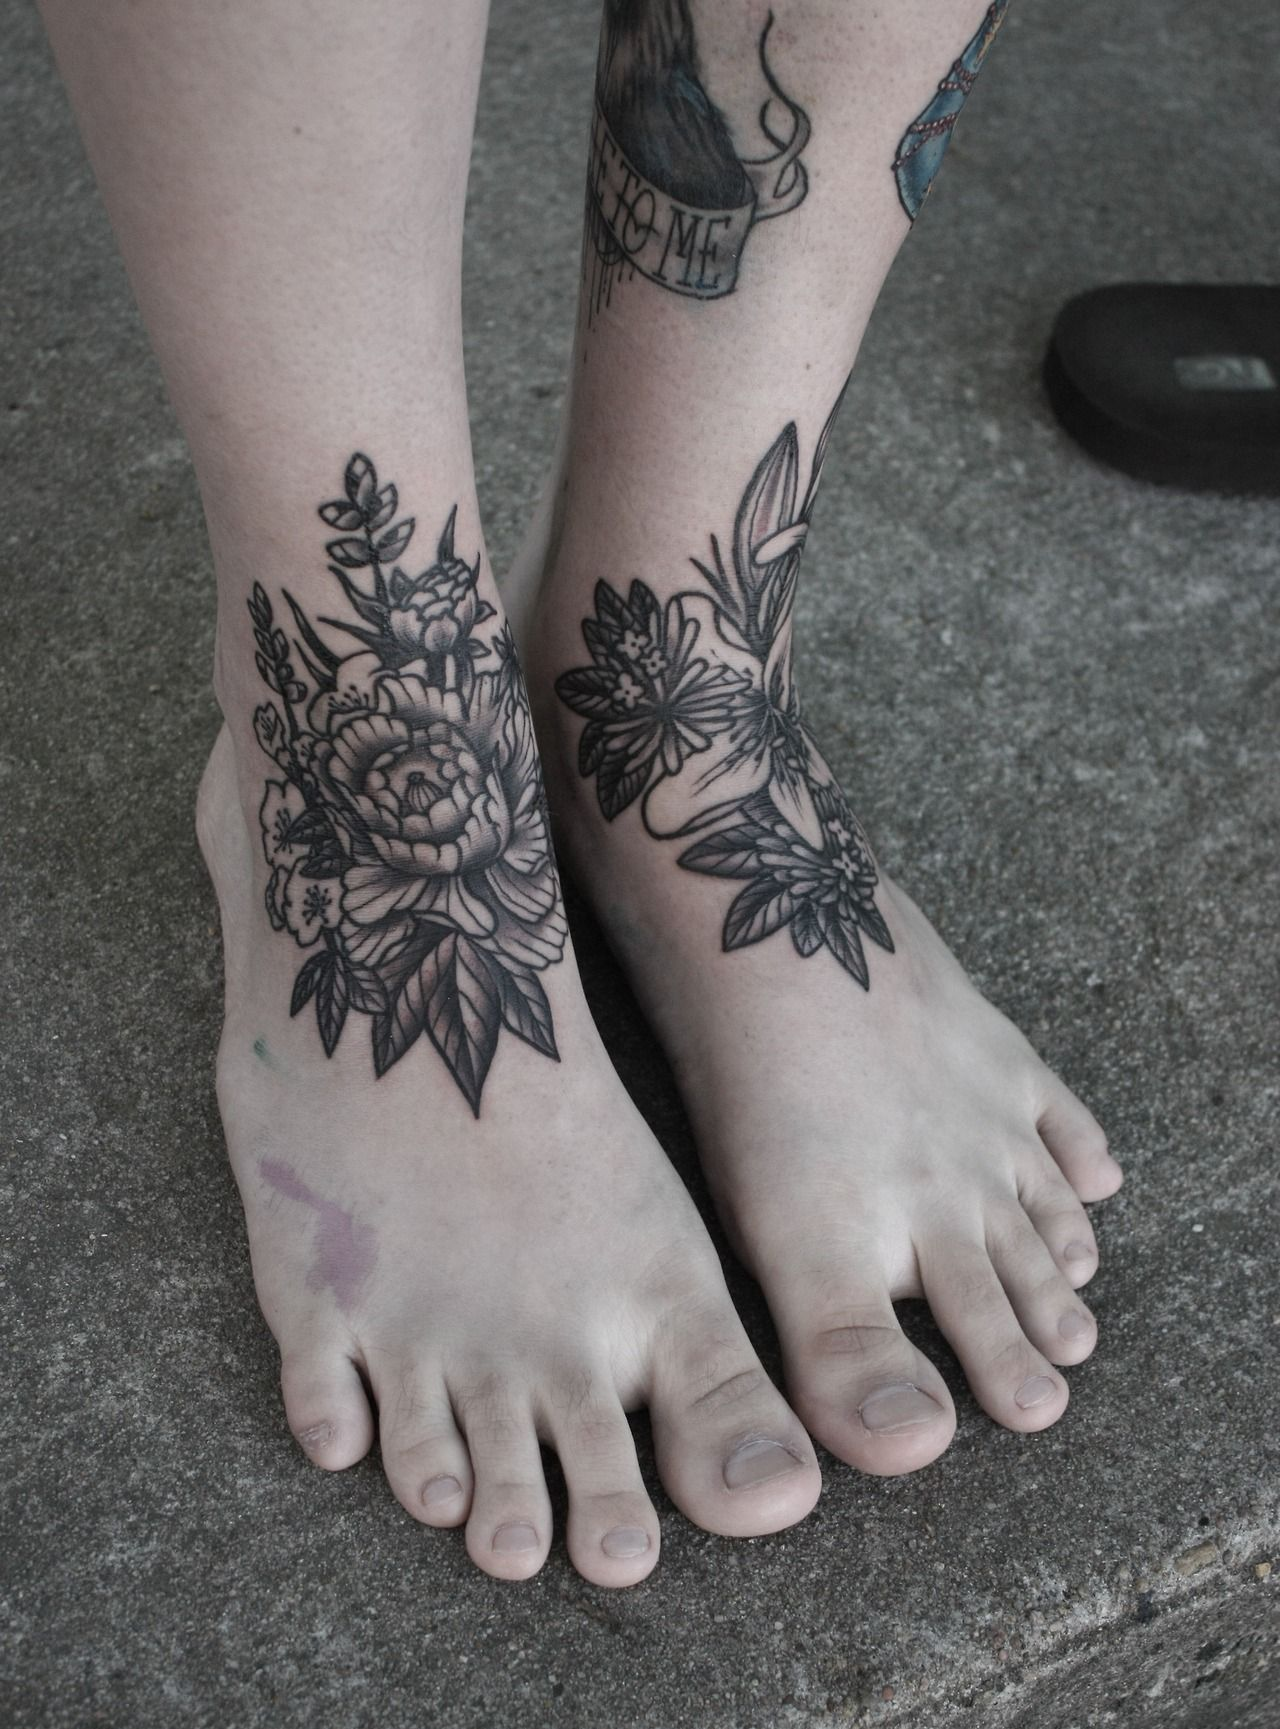 Awesome Placement So Much Better Than Putting Directly On Foot Foot Tattoos Foot Tattoos For Women Tattoos